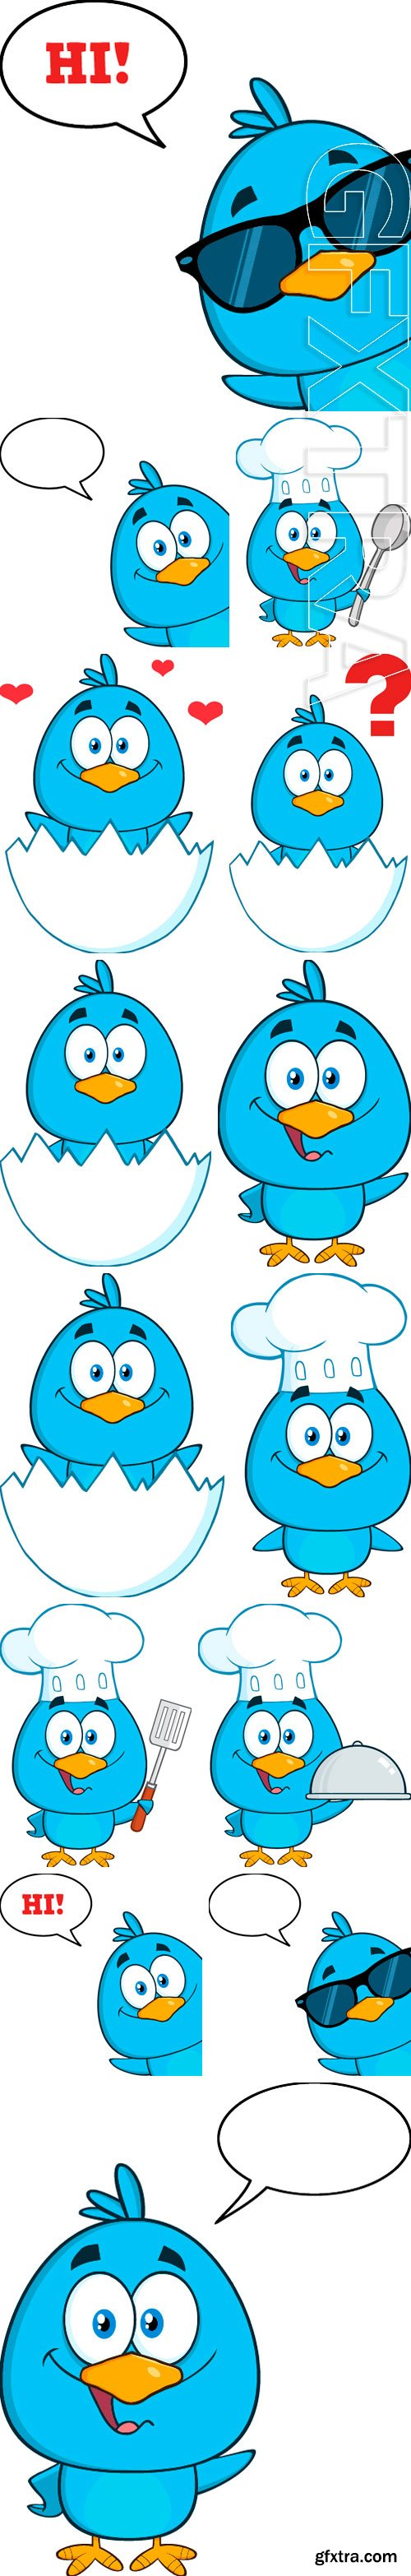 Stock Vectors - Cute Blue Bird Cartoon Character. Vector Illustration Isolated On White